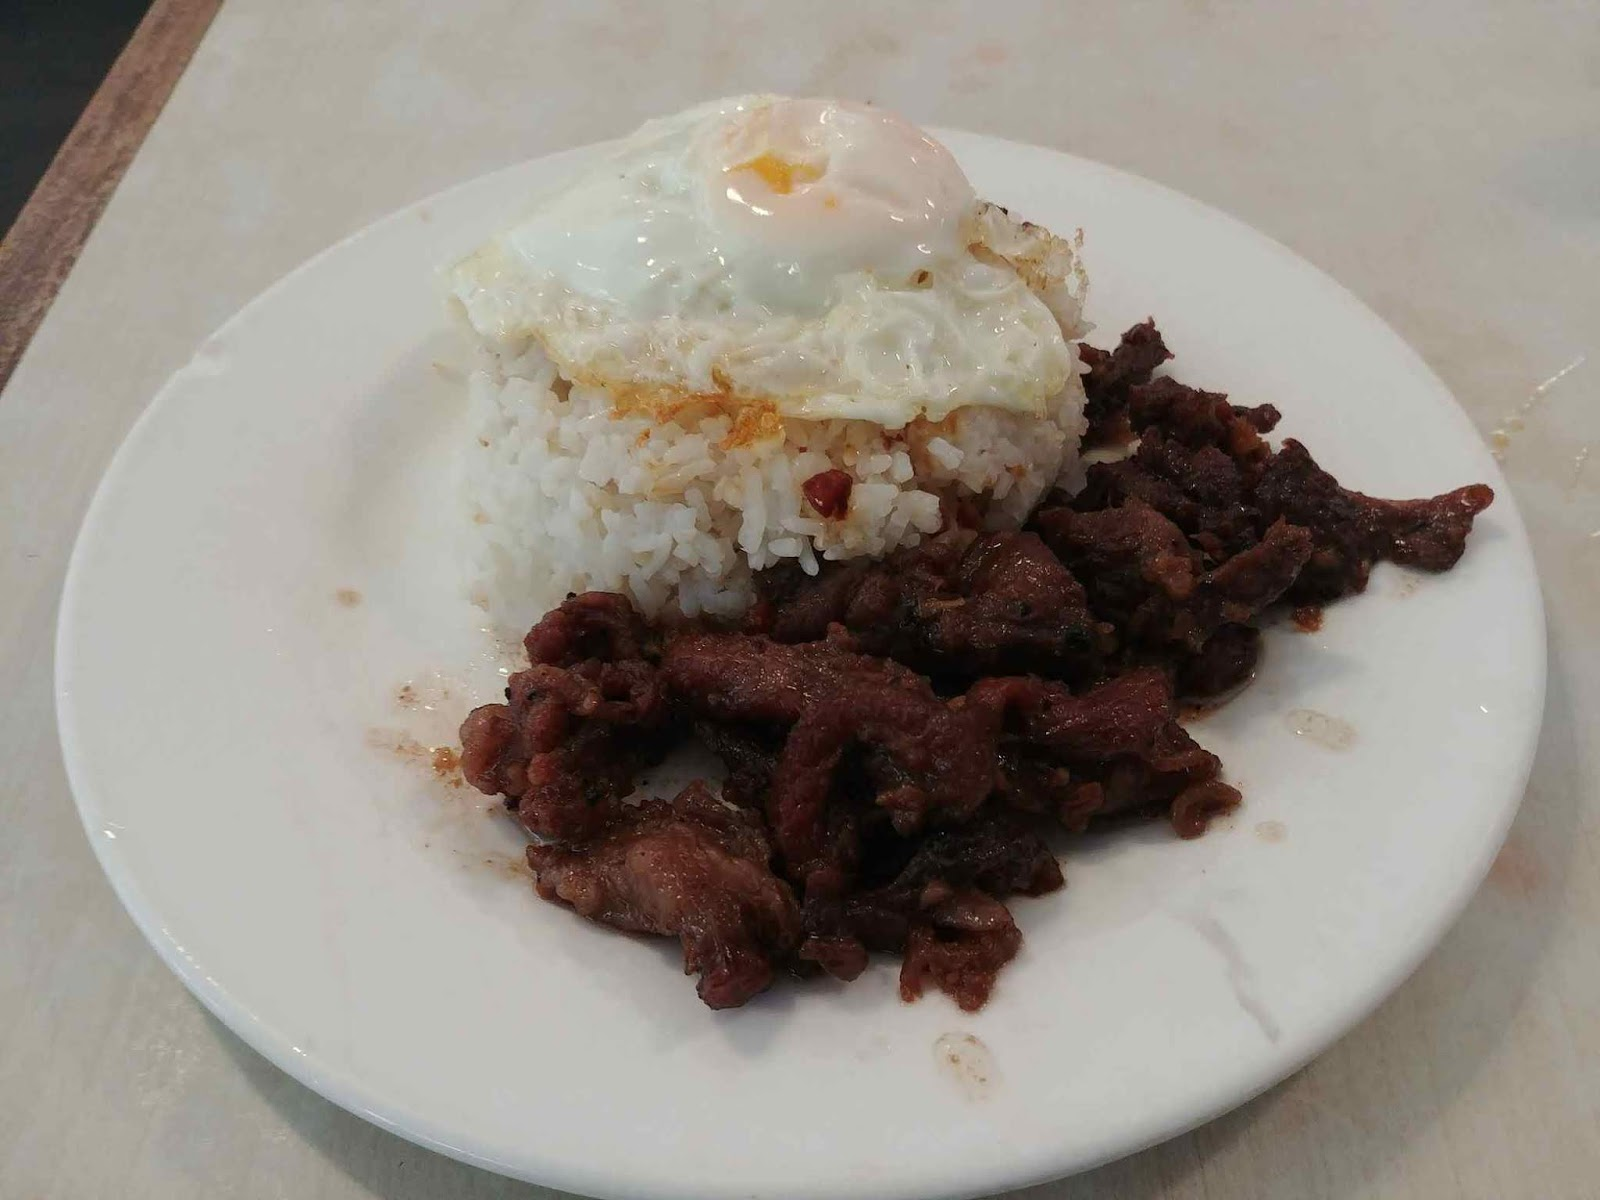 Tapsi ni Vivian's tapa, sinangag, and itlog or more popularly known as tapsilog